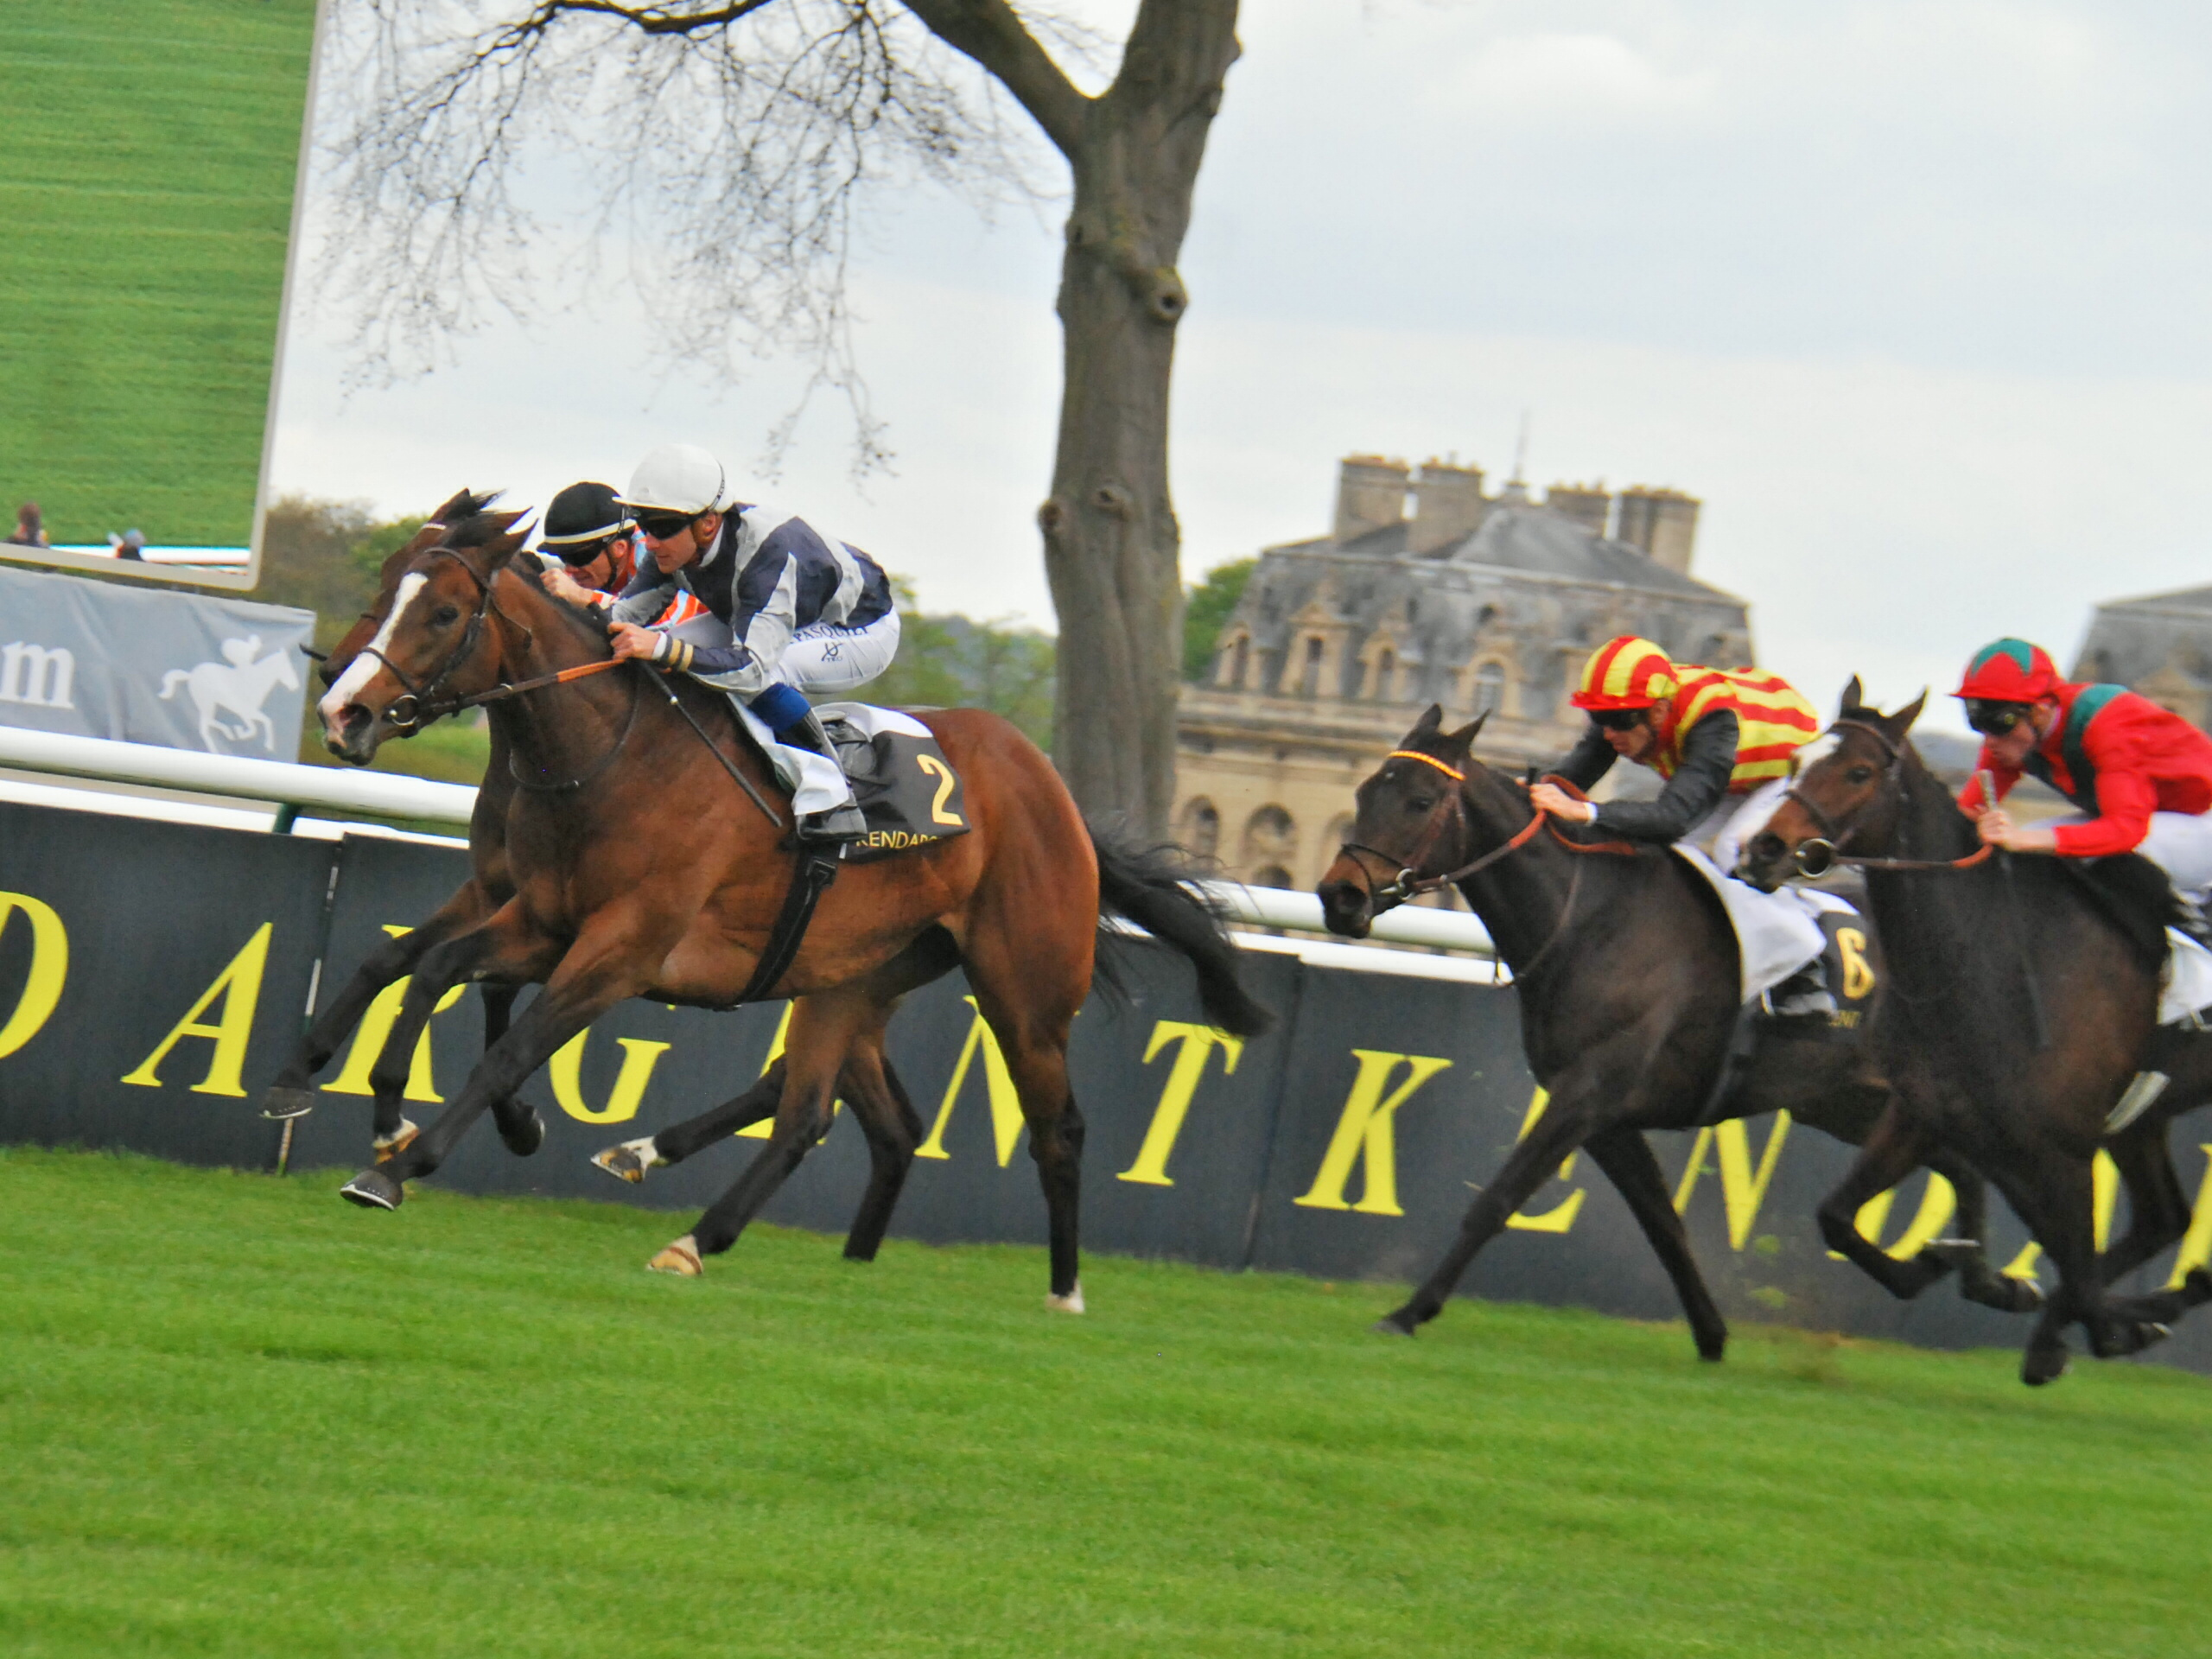 Likely Pouliches favourite Senga (Stephane Pasquier) wins the Prix de la Grotte at Chantilly. Photo: John Gilmore